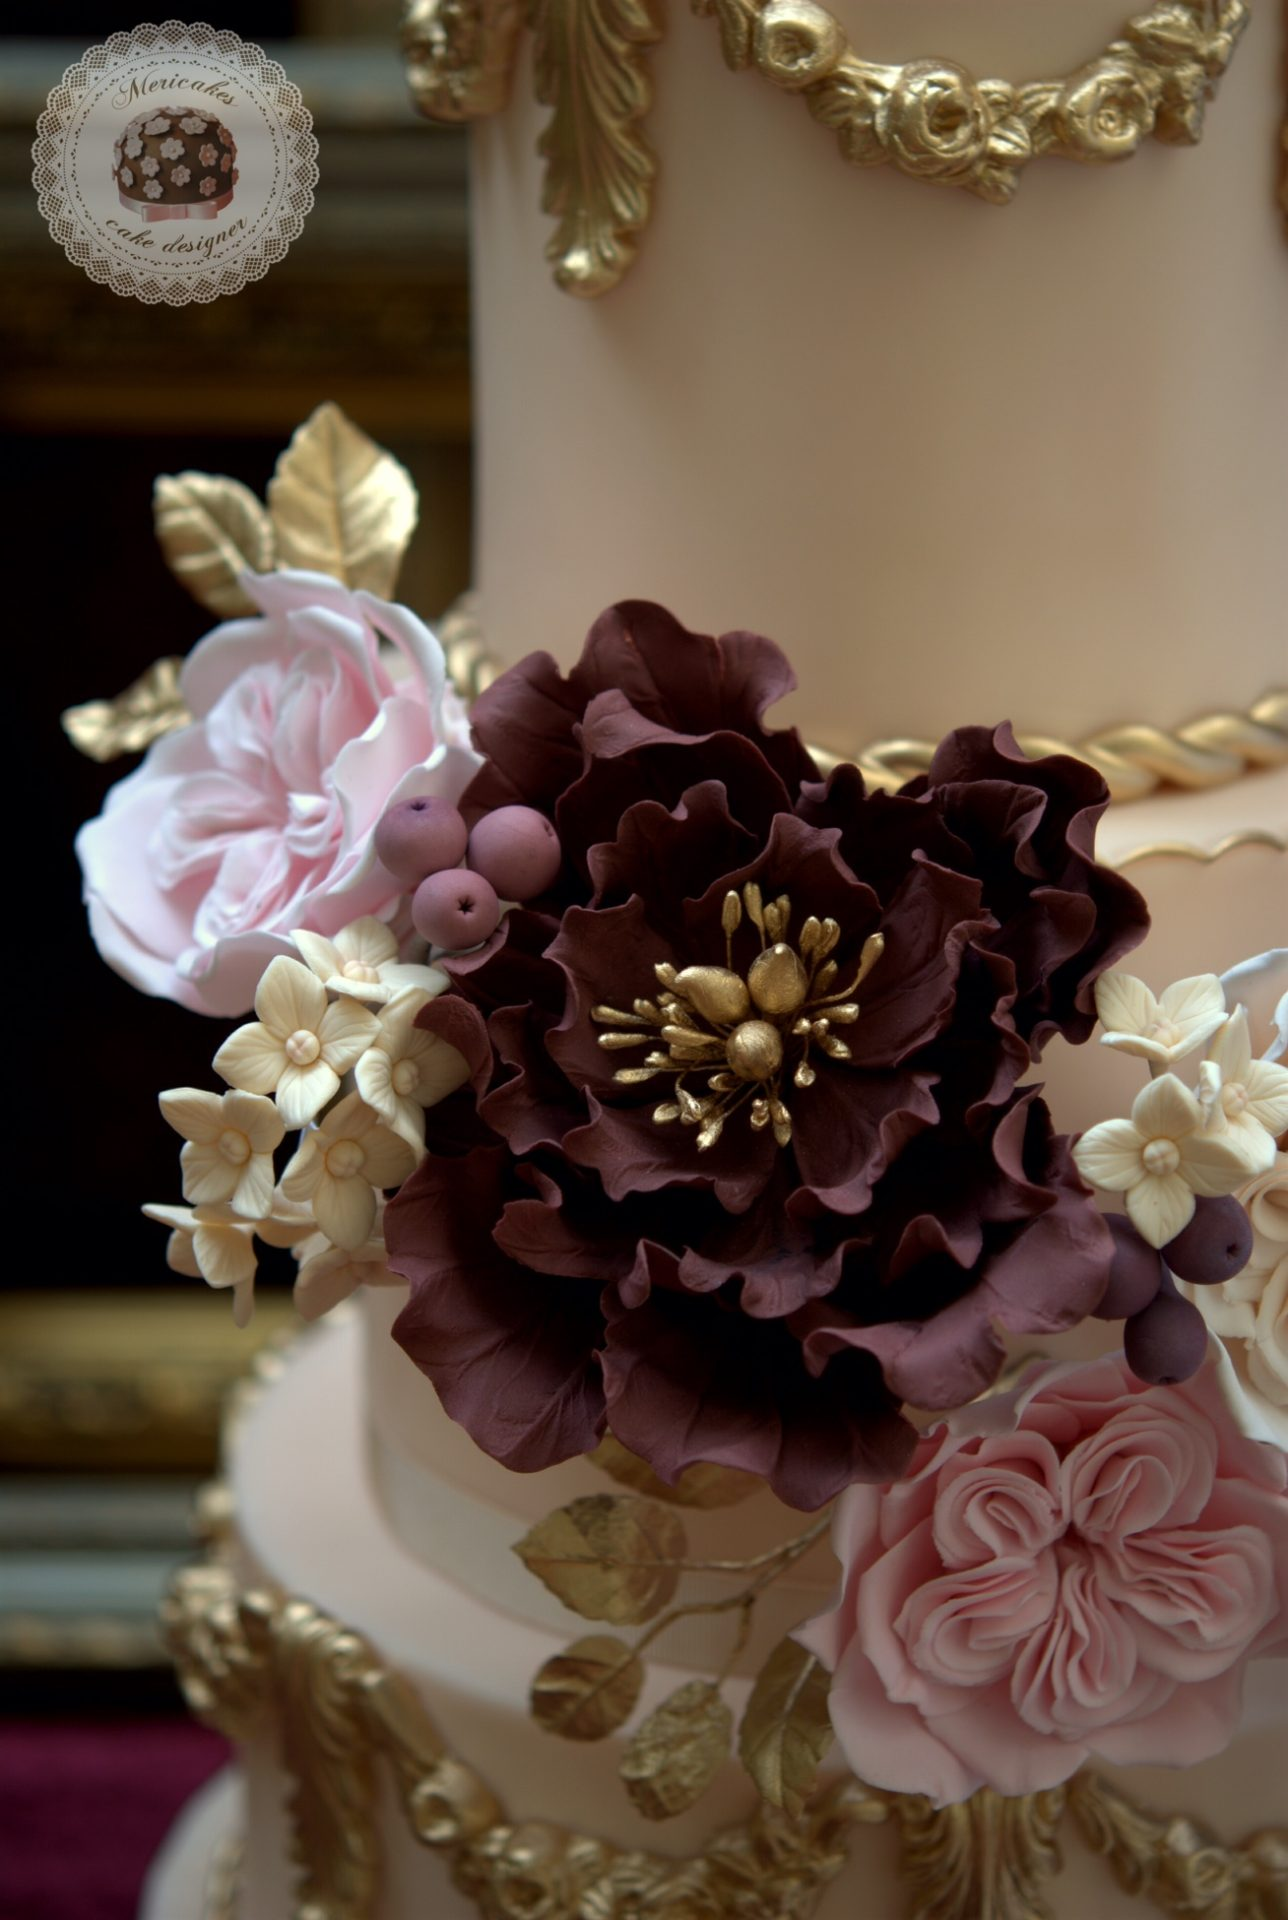 baroque-love-wedding-cake-mericakes-8